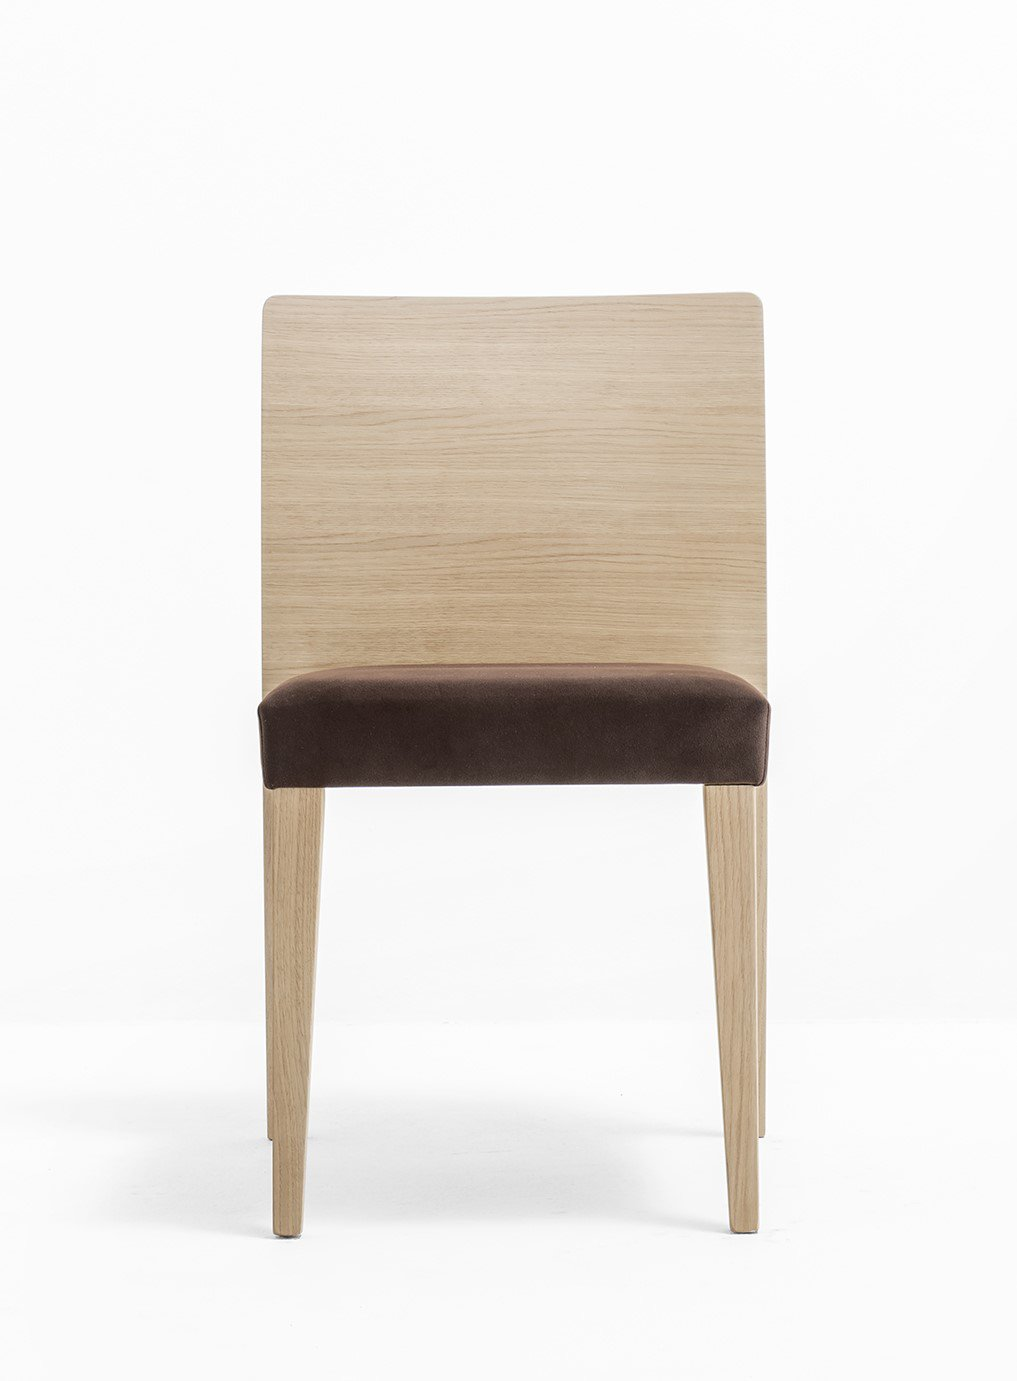 Glam 431 chair from Pedrali, designed by Pedrali R&D